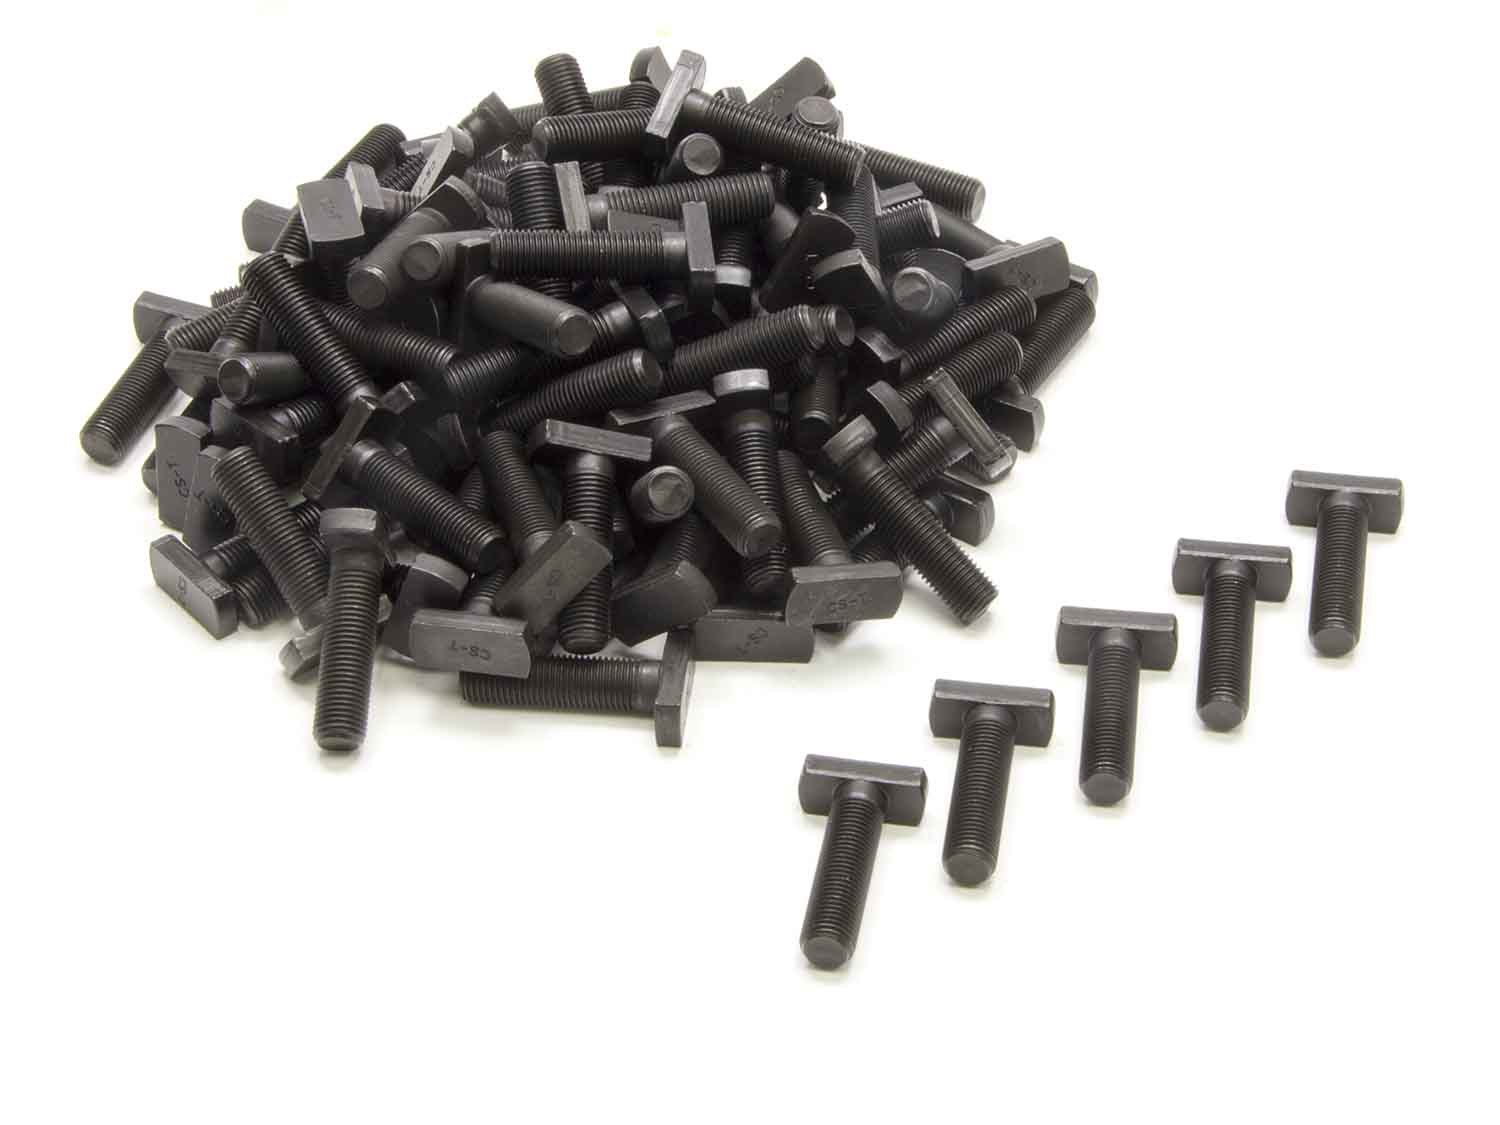 Nine Plus 95042 T-Bolt, 3/8-24 in Thread, Steel, Black Oxide, Backing Plate, Ford 9 in, Set of 100